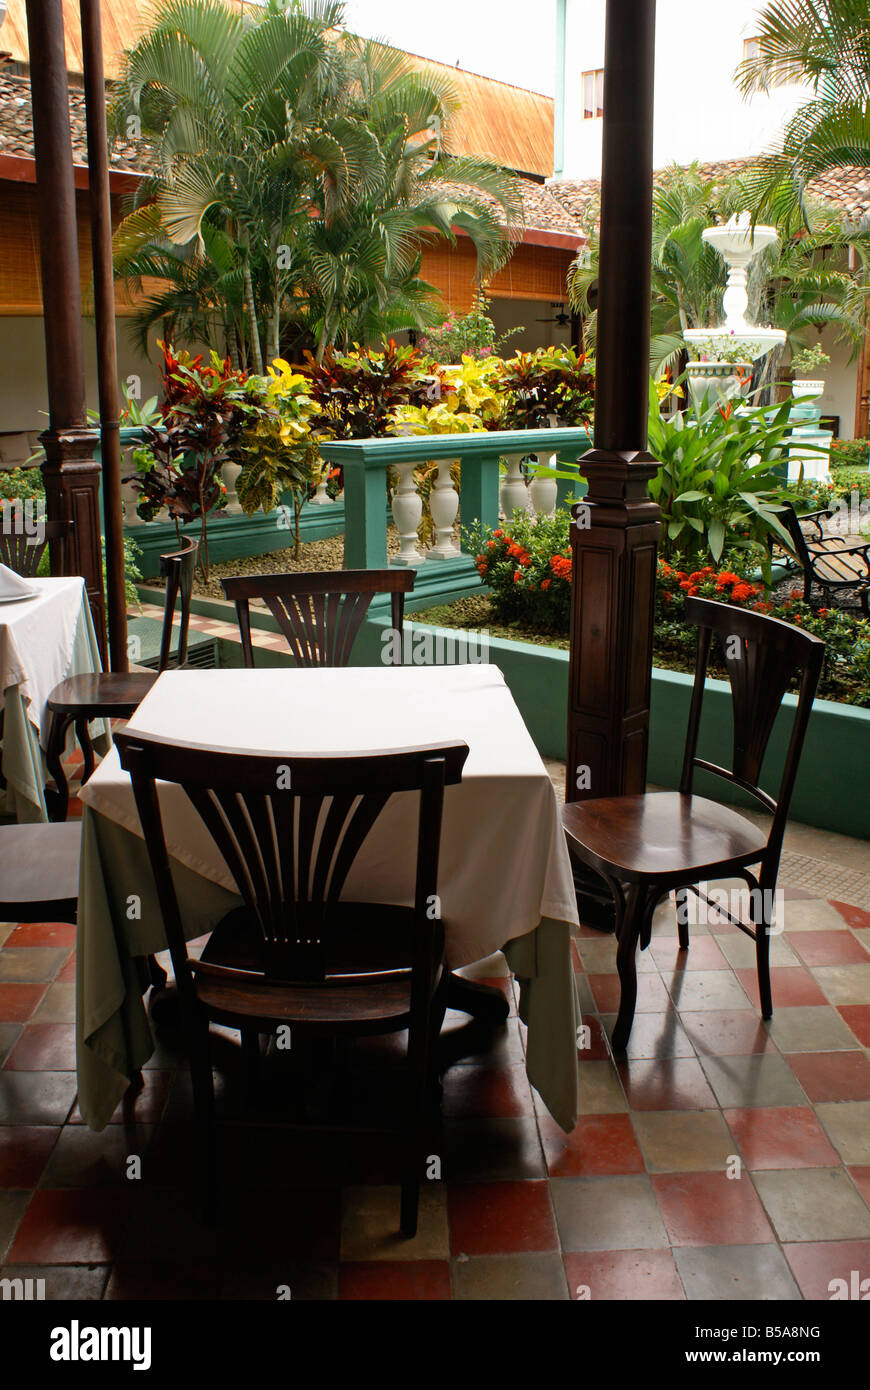 Interior courtyard and restaurant of the Hotel Dario in the Spanish colonial city of Granada, Nicaragua - Stock Image